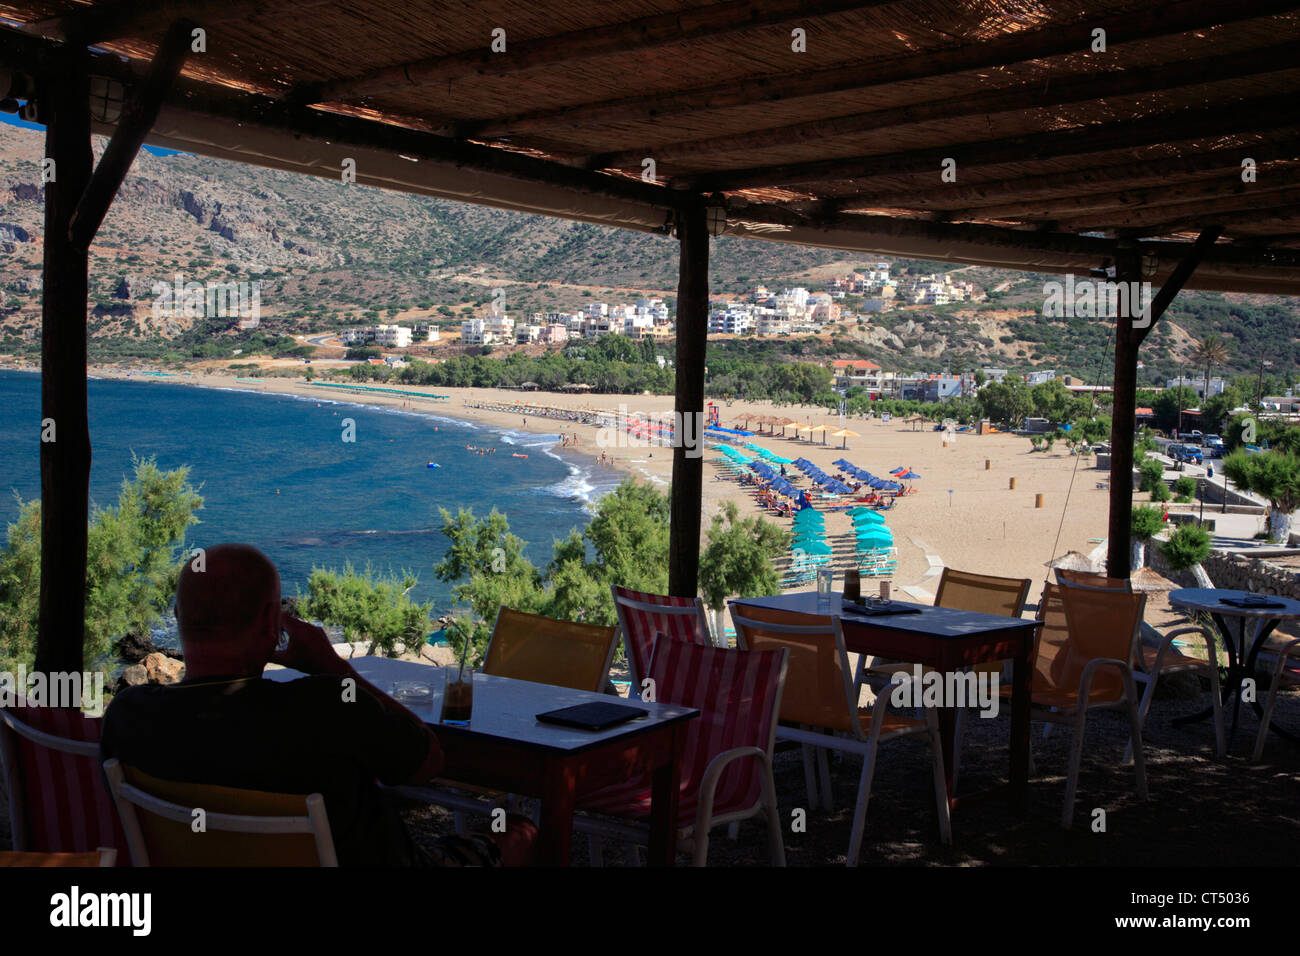 Man sat with drink, enjoying the view from Castello snack bar, Paleochora vilage, Crete, Greece Stock Photo